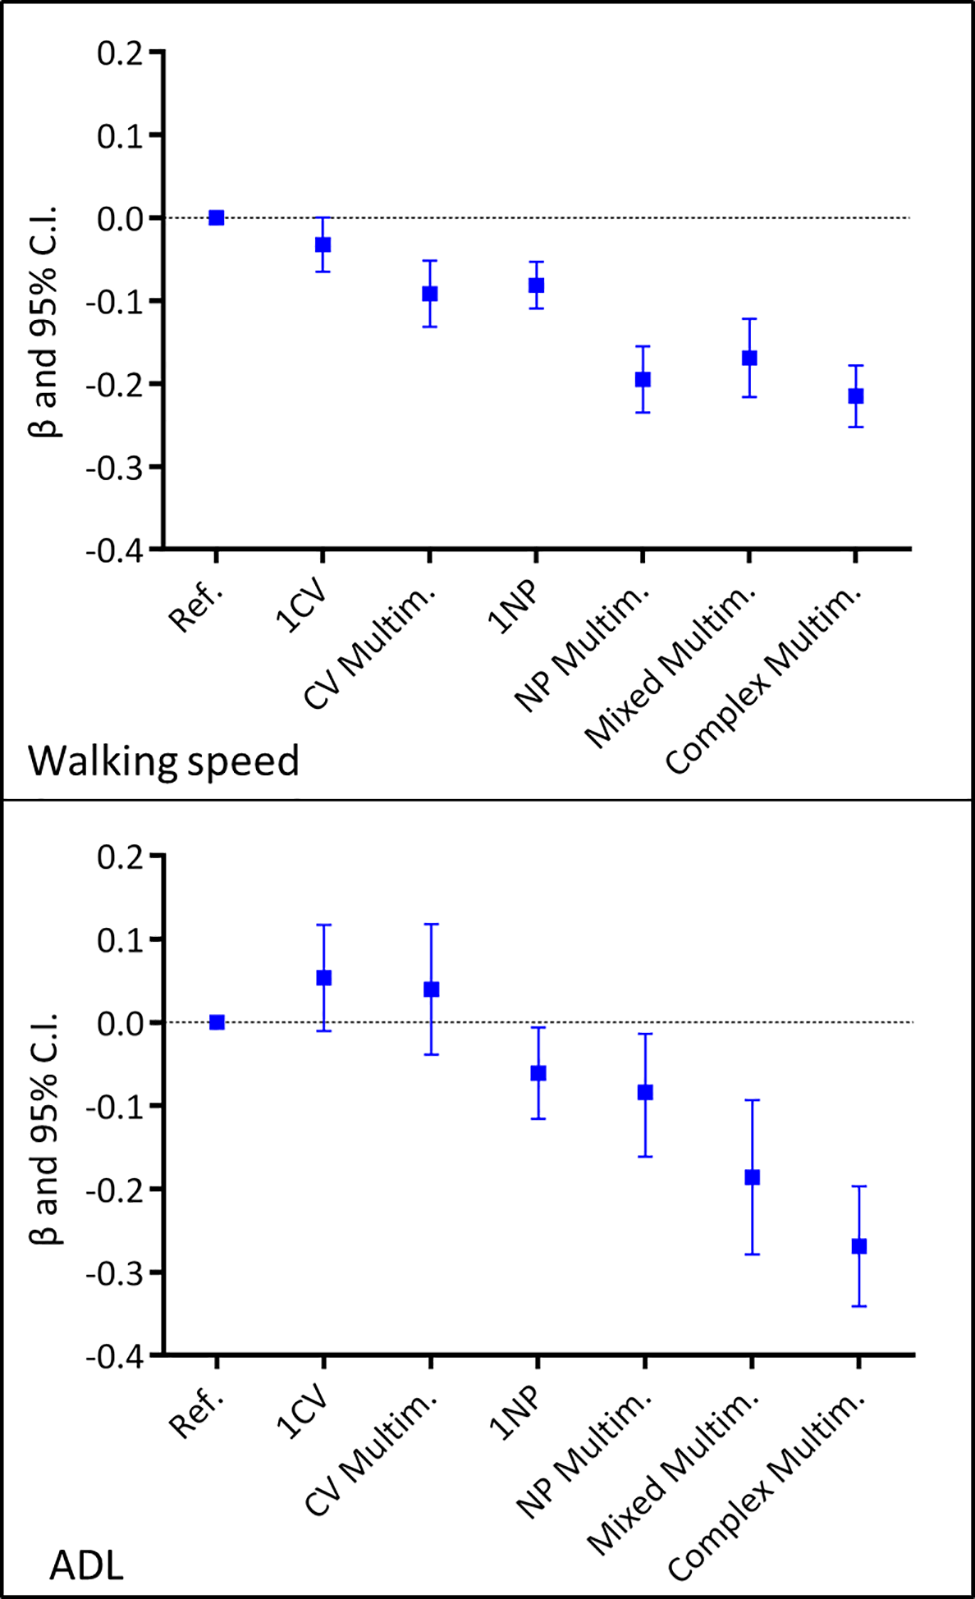 Association of chronic disease patterns with walking speed and number of intact ADL based on 6-year repeated measures of disease patterns, covariates, and outcomes.